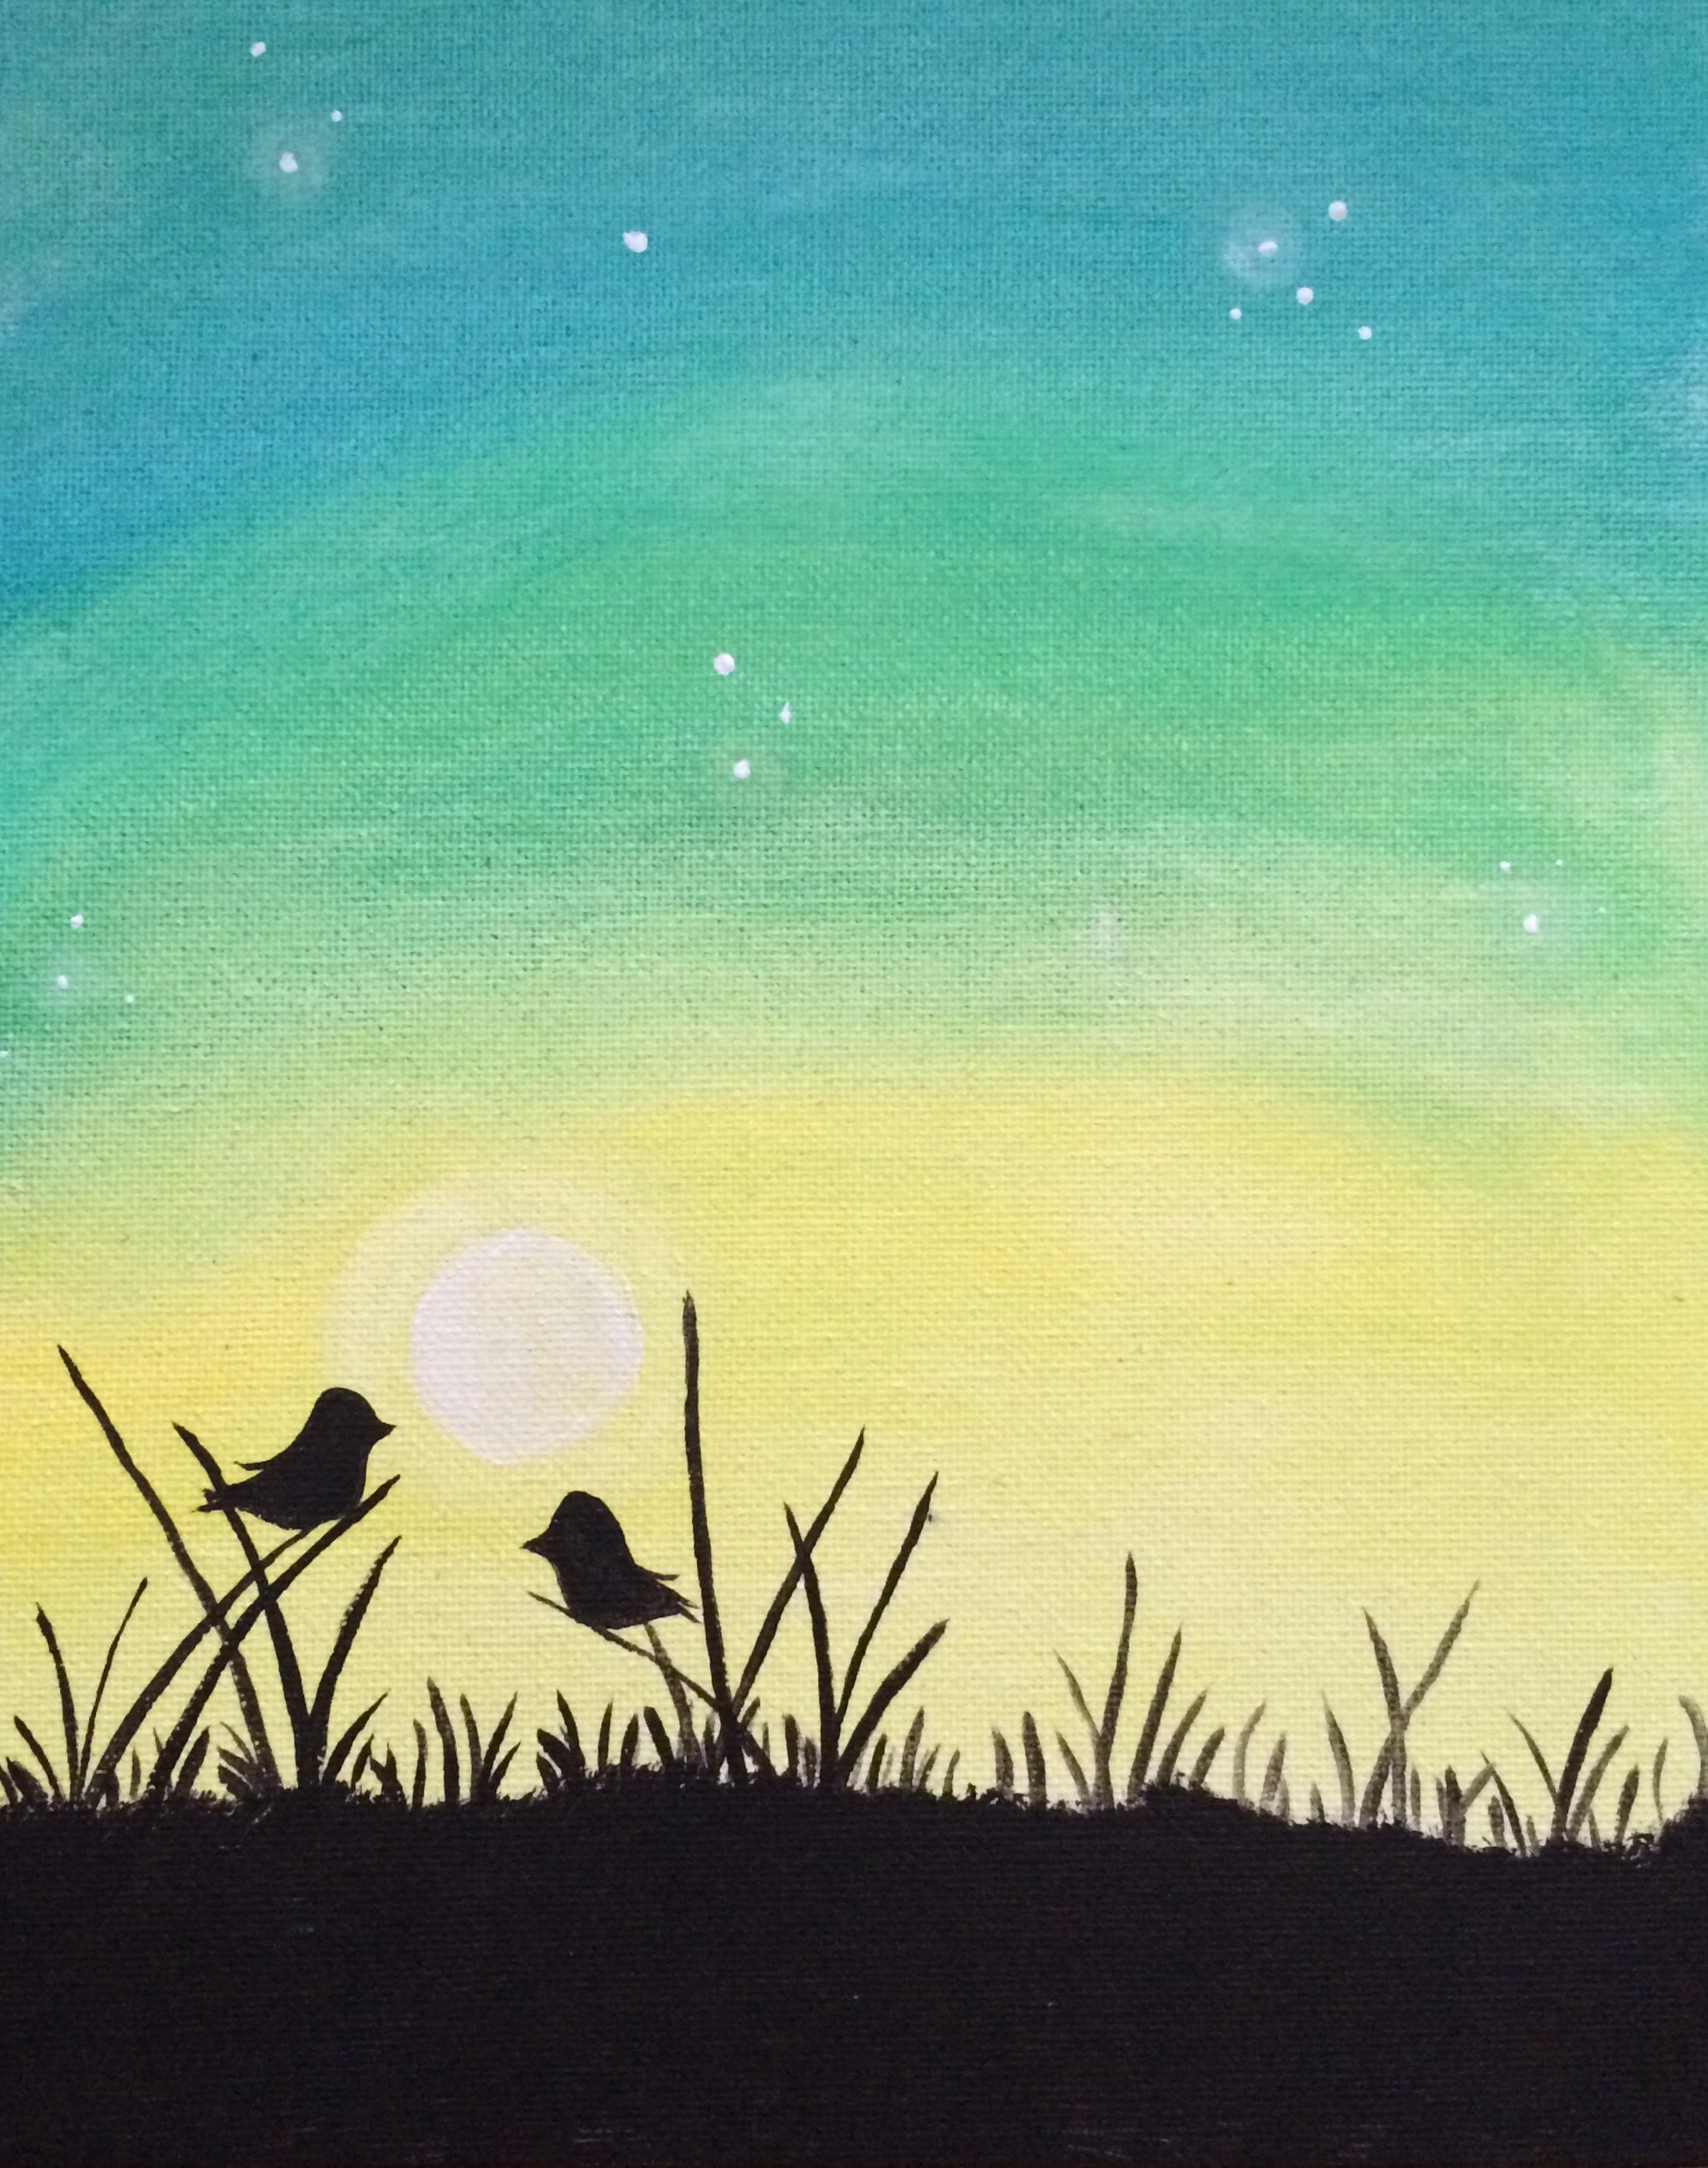 Birds and Grass